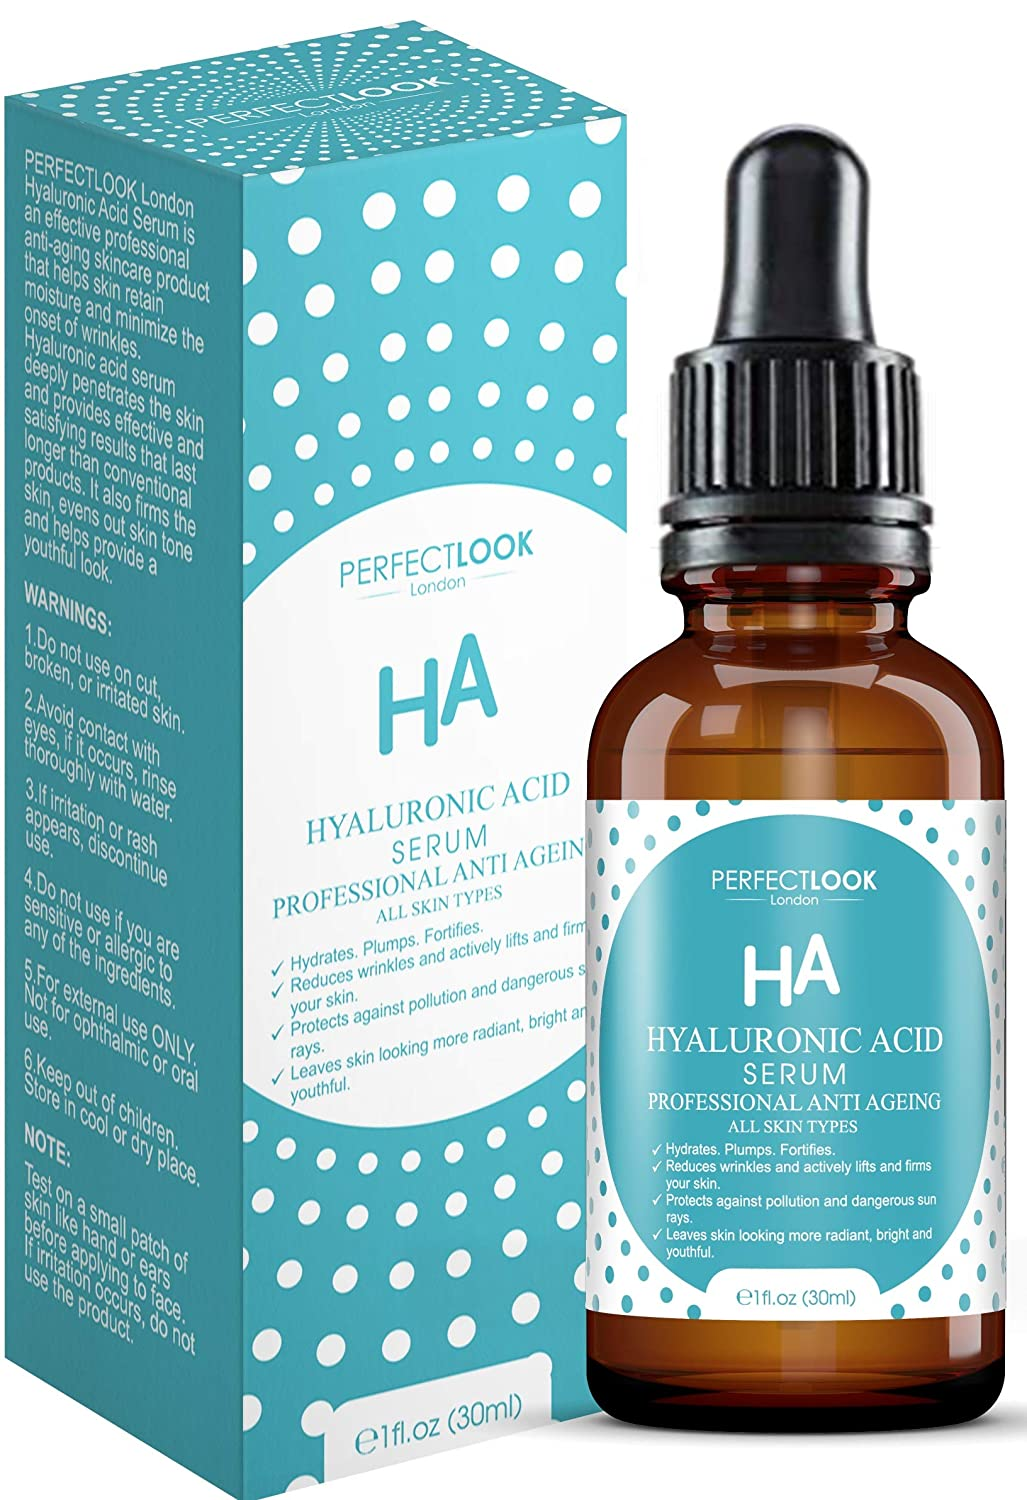 Hyaluronic Acid Serum Anti Ageing Professional With B5 Perfect Look